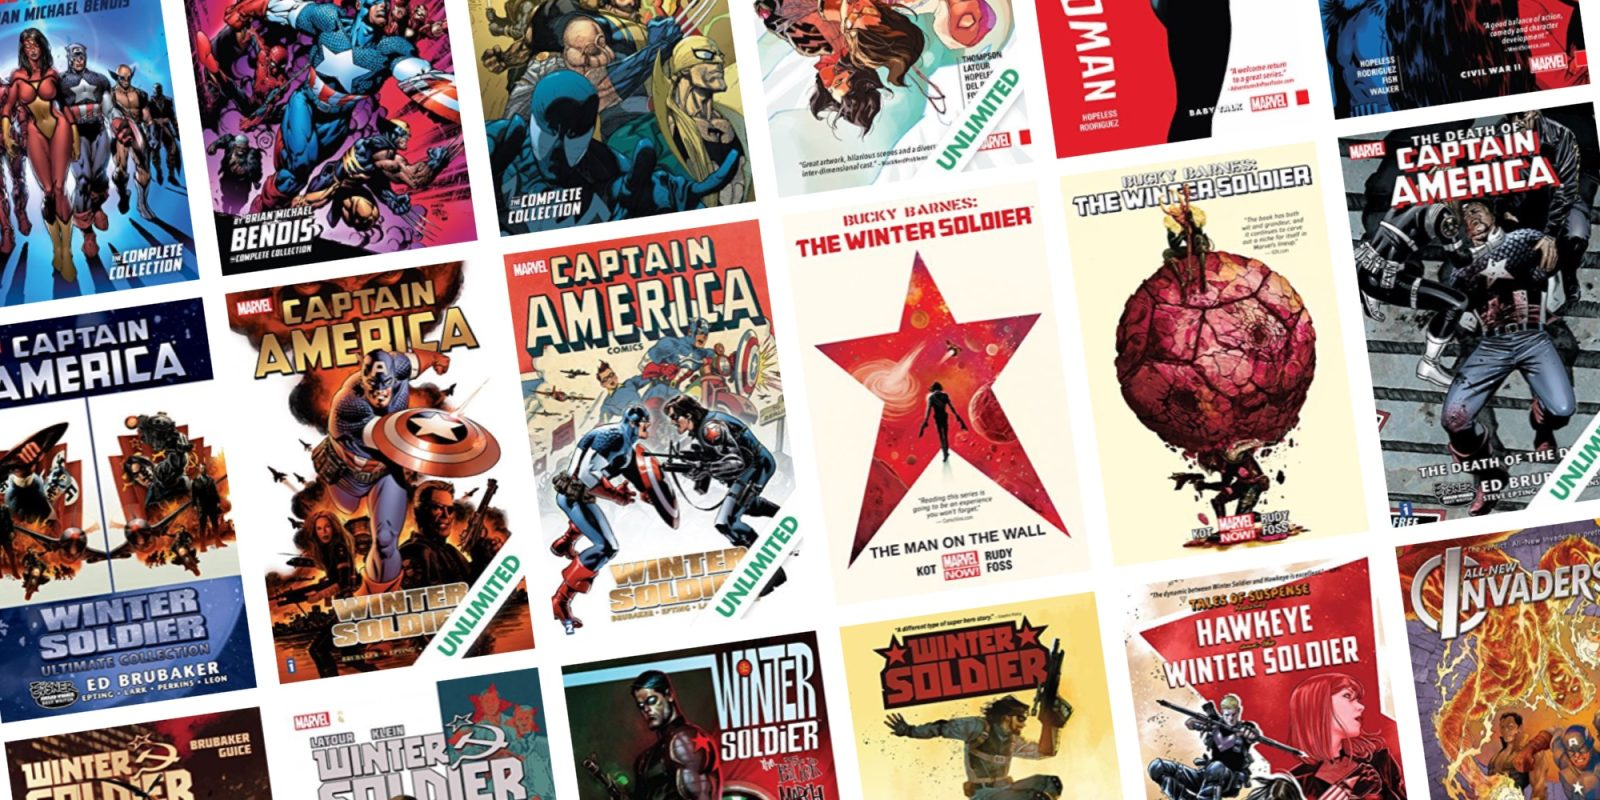 ComiXology ends the week with up to 67% off Winter Soldier comics, and more